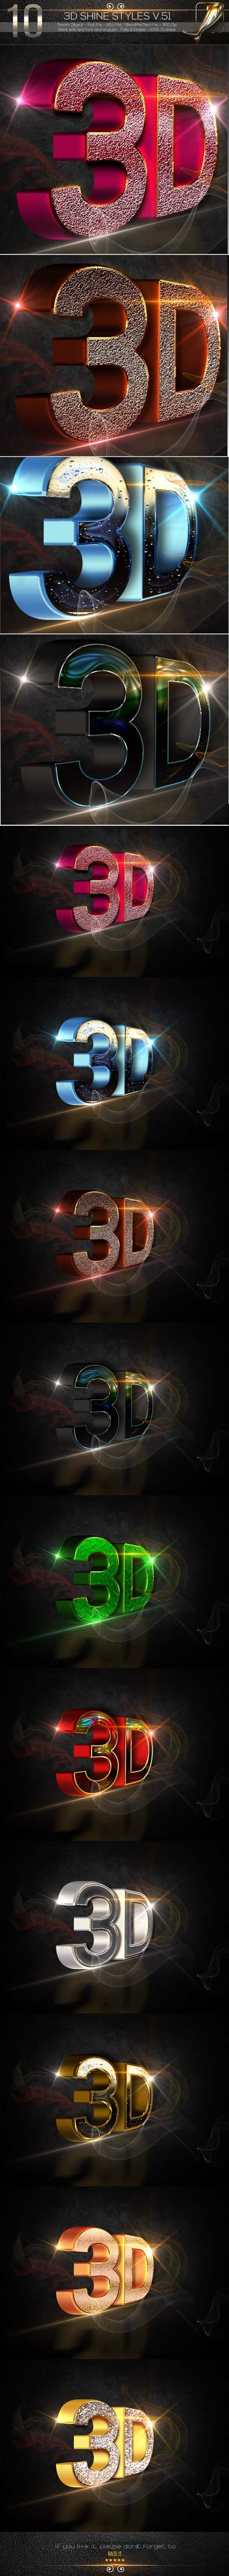 10 3D Text Style V.51Des - Text Effects Styles